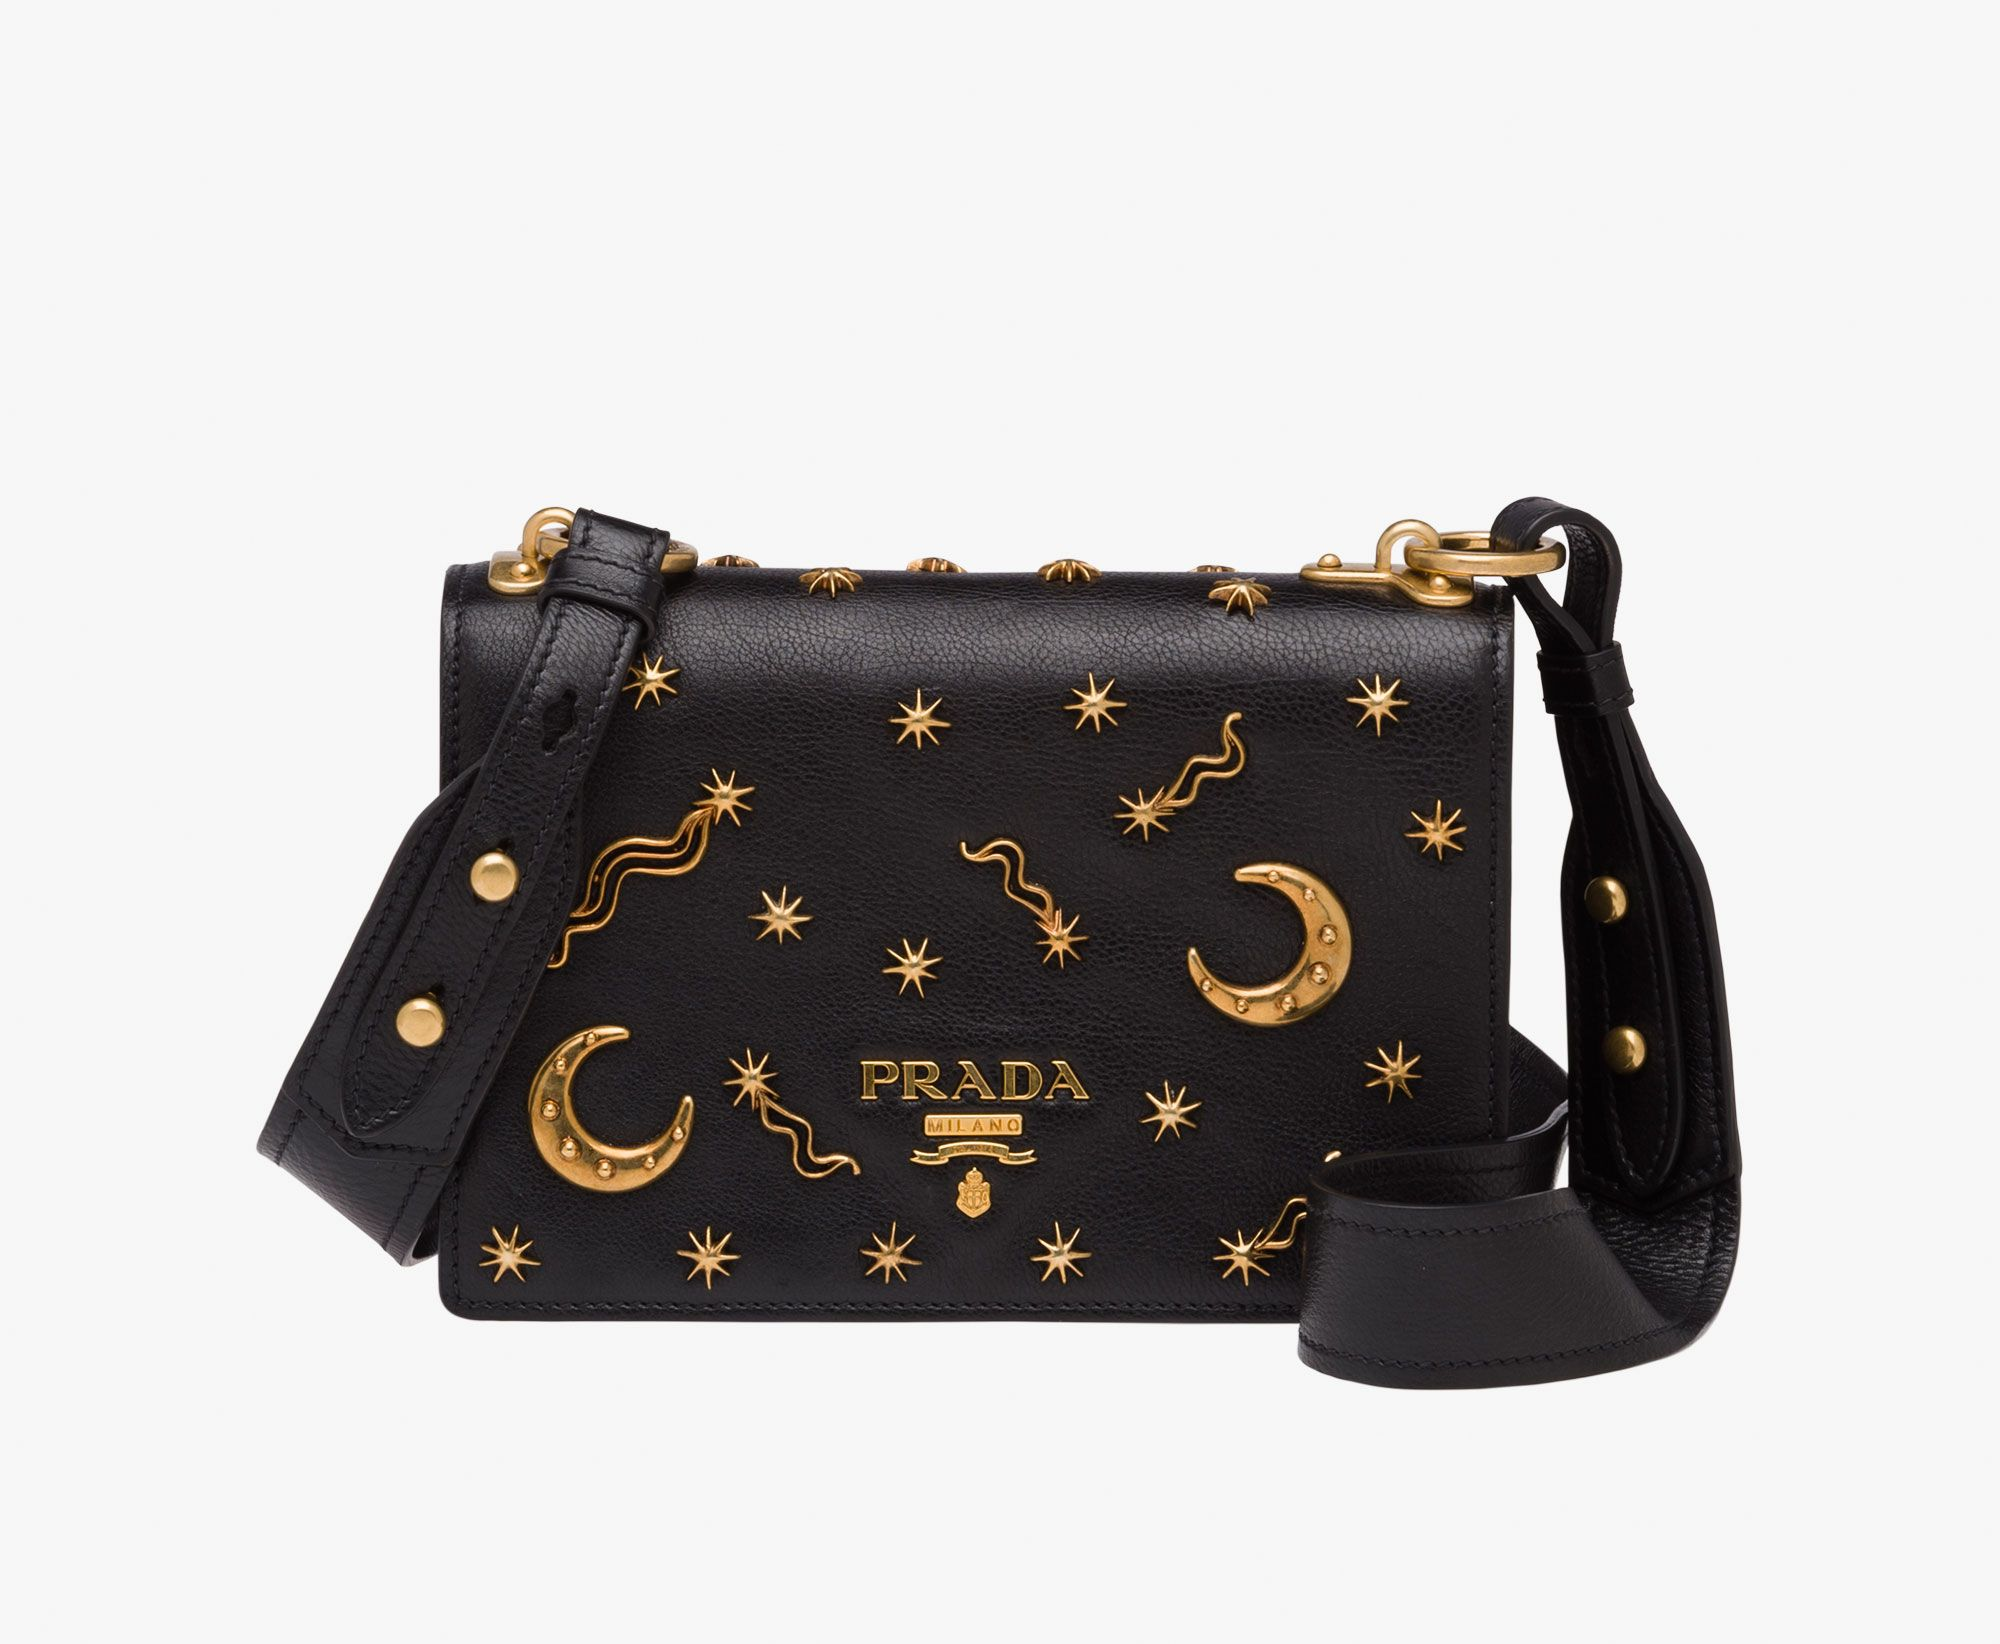 Calf leather shoulder bag embellished with star and moon appliqués Leather… 5bf53061cf7a4